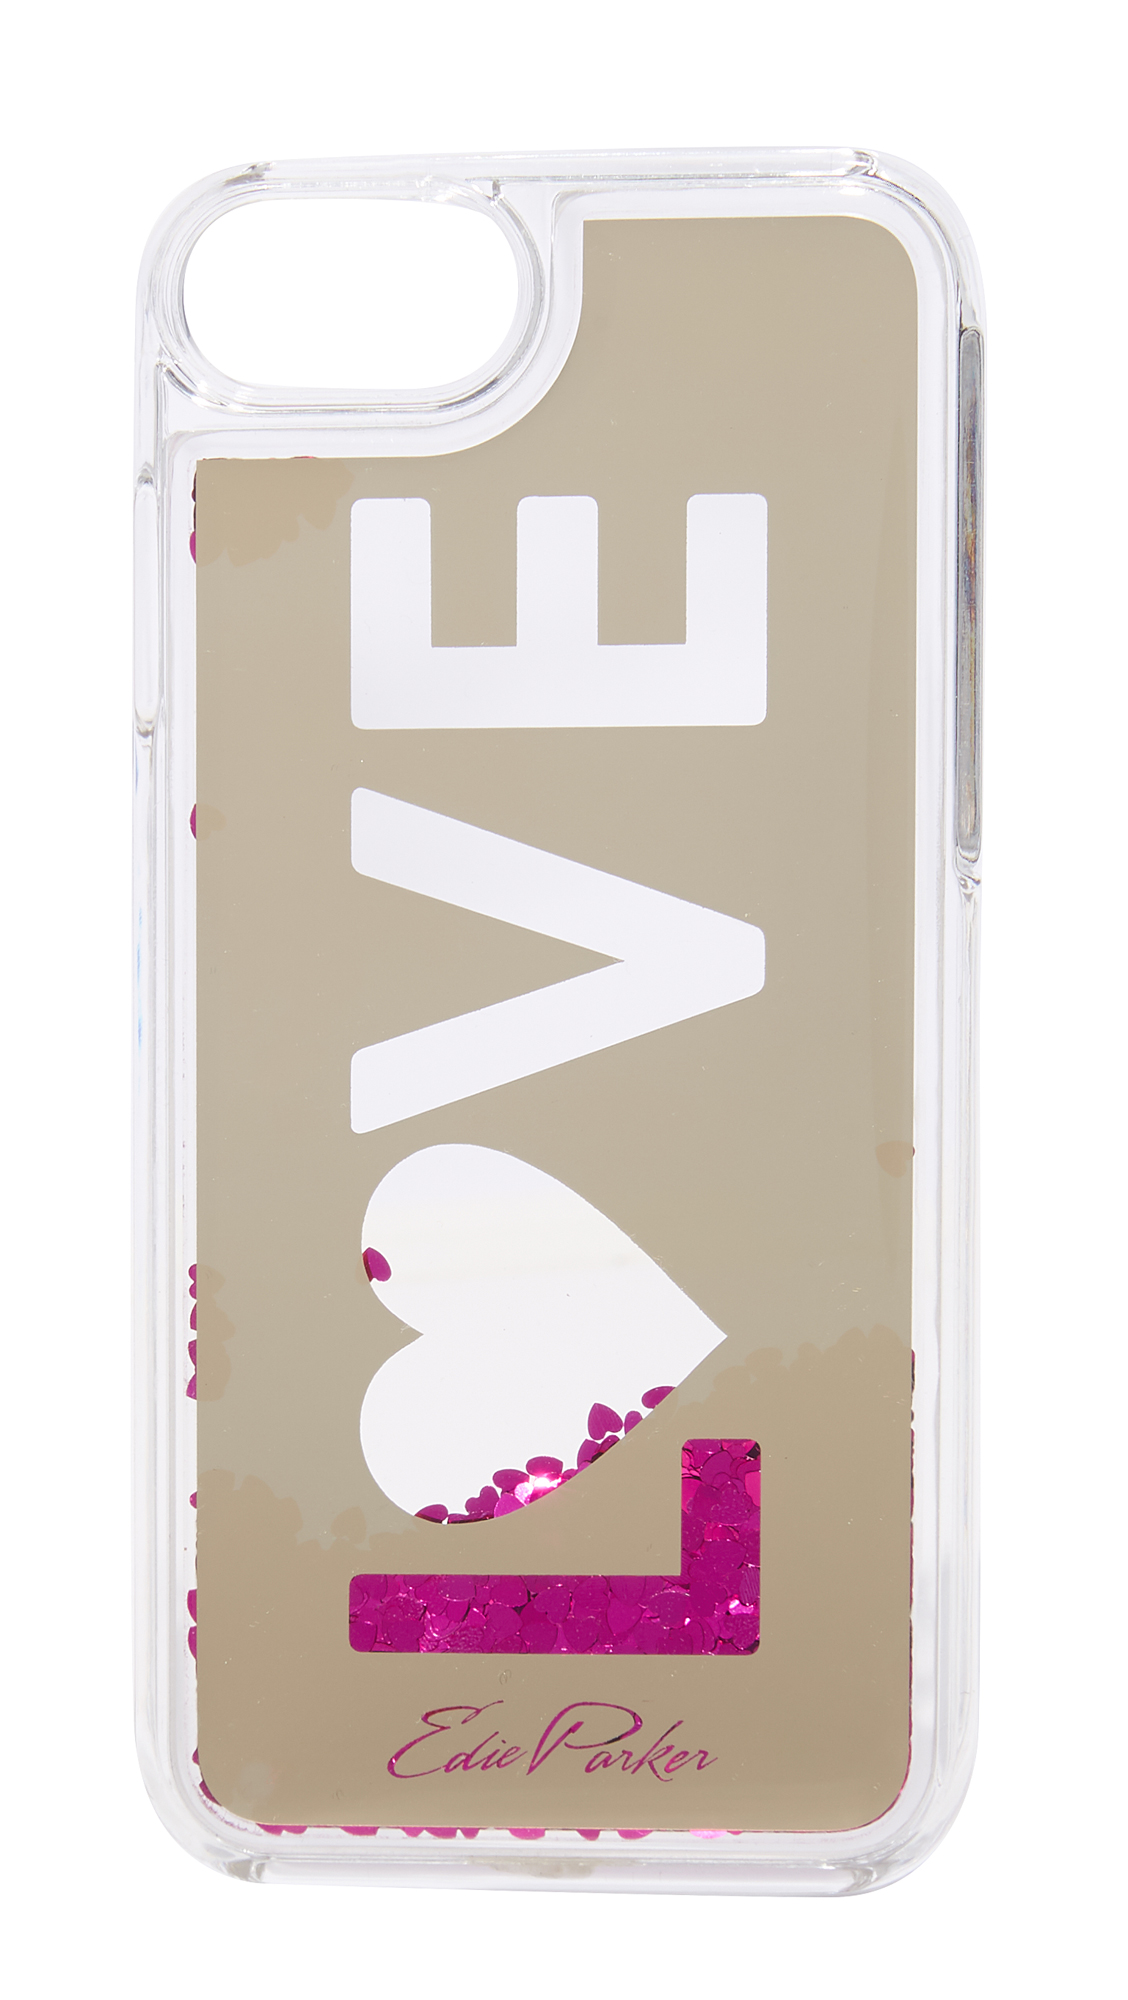 Edie Parker iPhone 6 / 6s / 7 Case Floating Love - Gold/Hot Pink